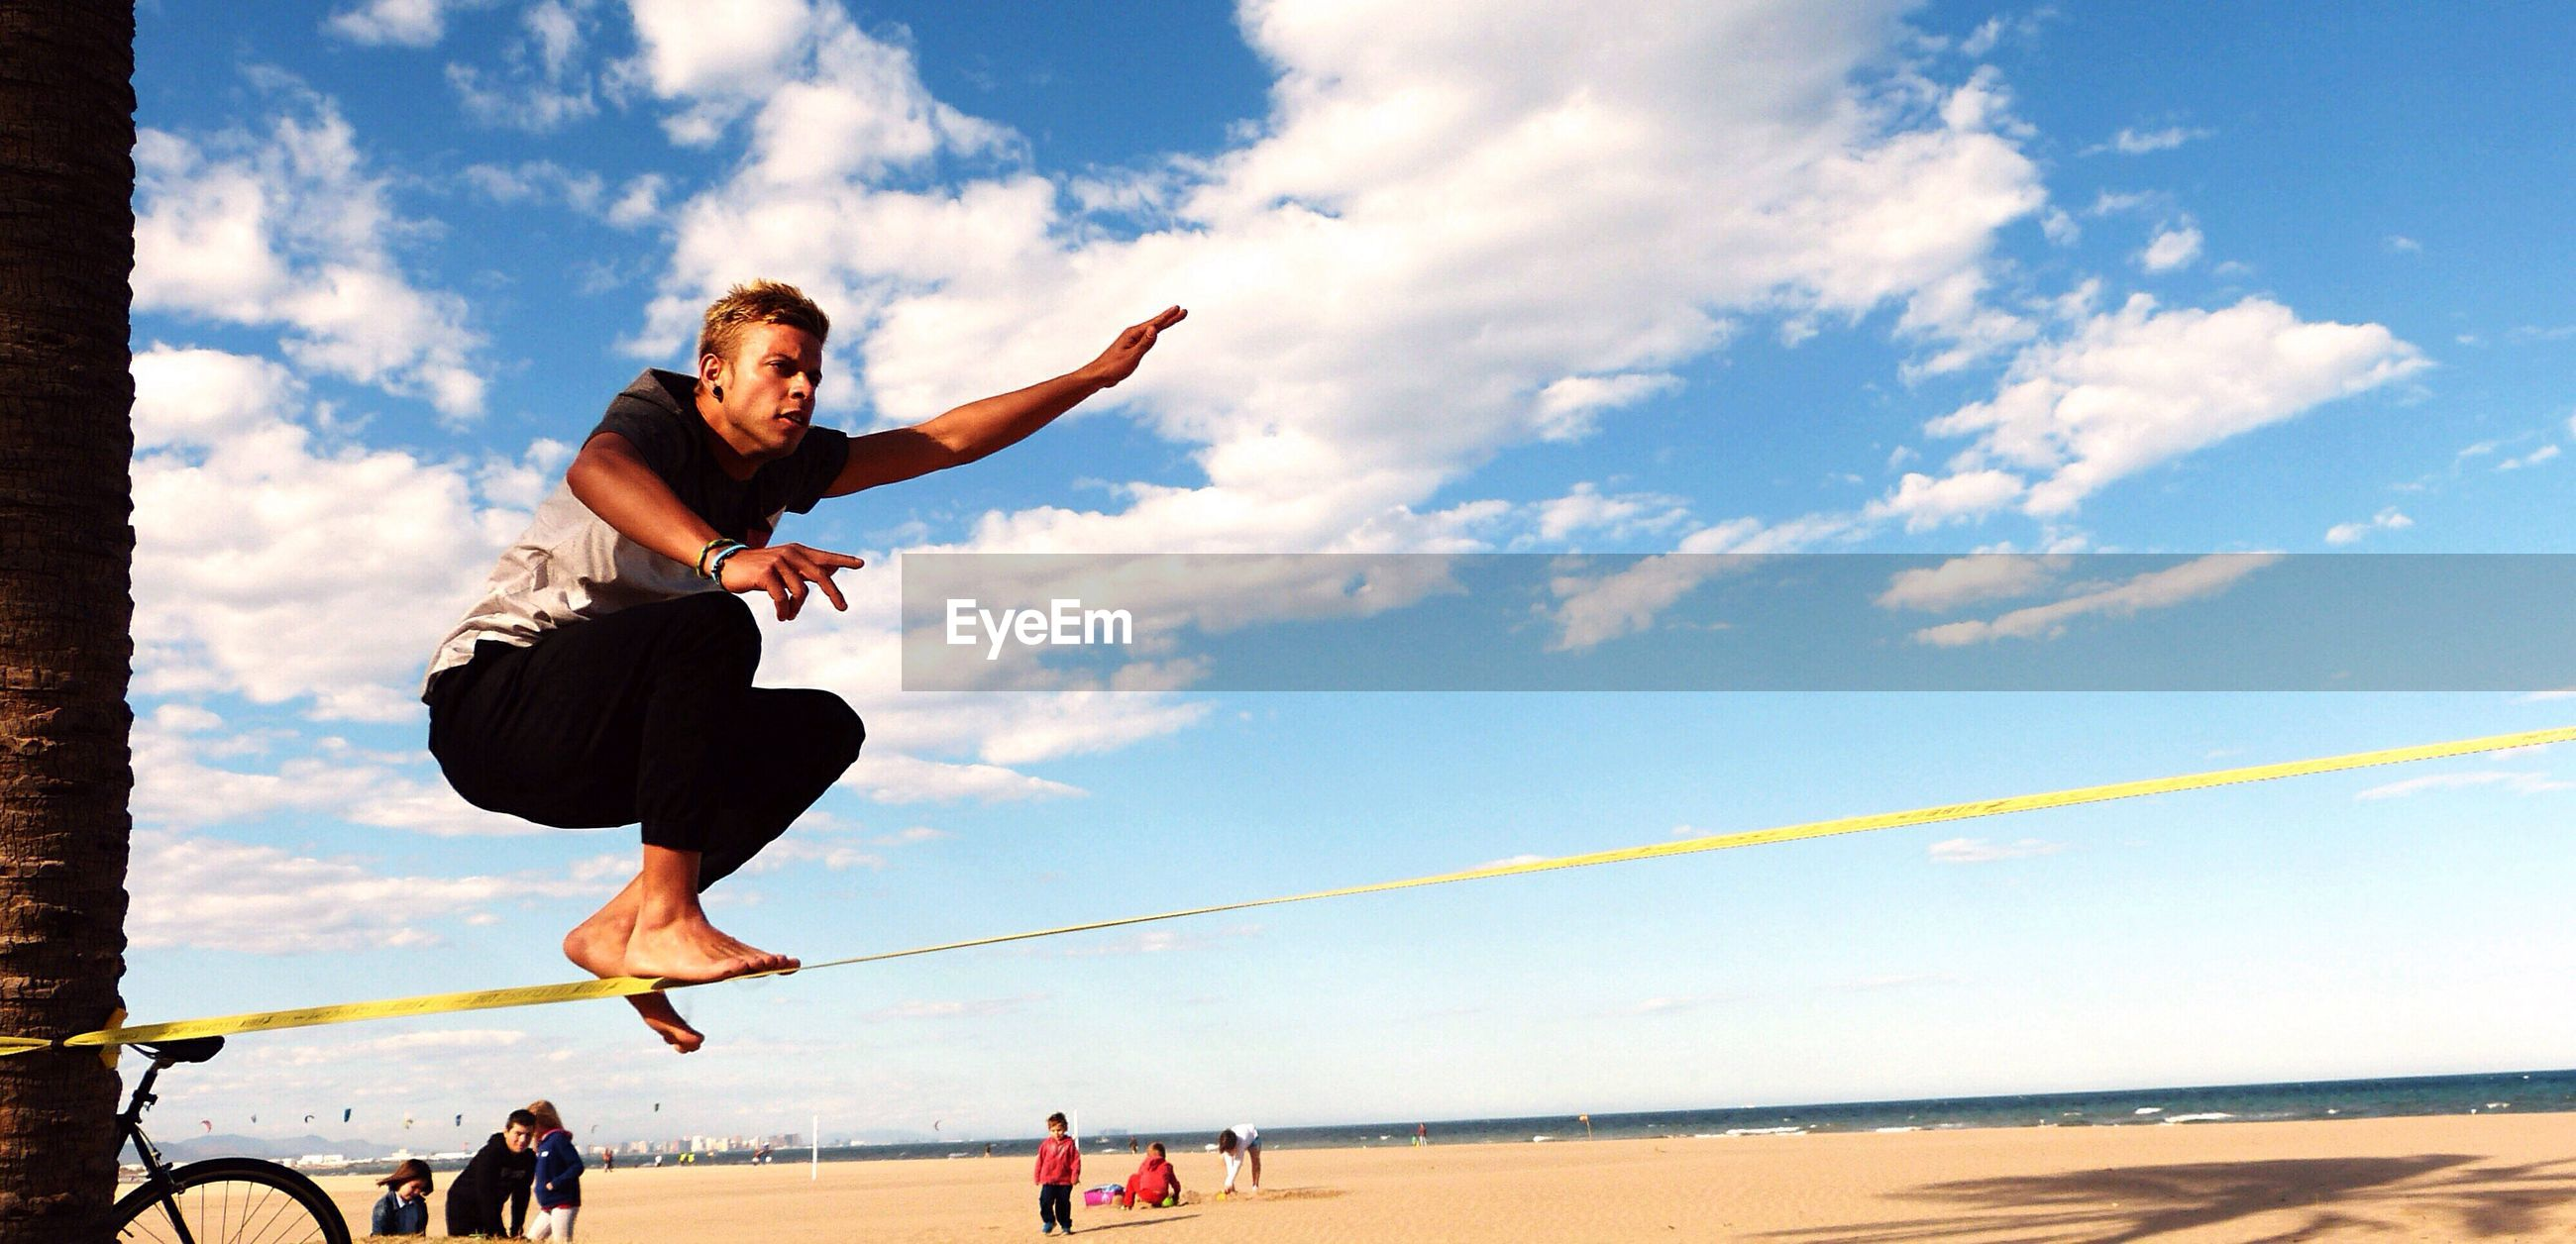 full length, lifestyles, leisure activity, person, casual clothing, young adult, enjoyment, happiness, sky, fun, jumping, young men, beach, playing, mid-air, vacations, arms outstretched